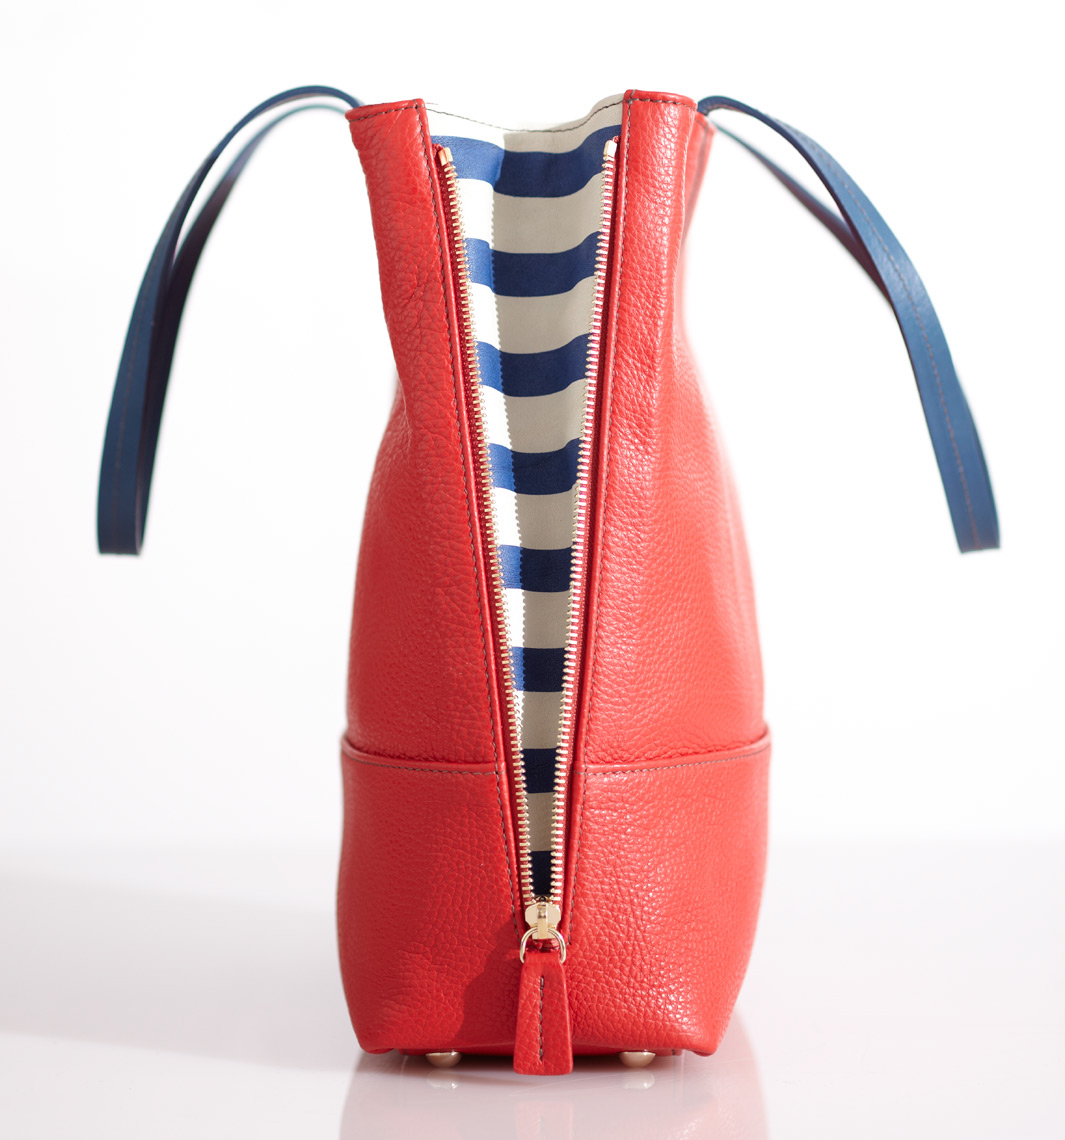 red zip-up handbag with blue handles and blue and white striped sides